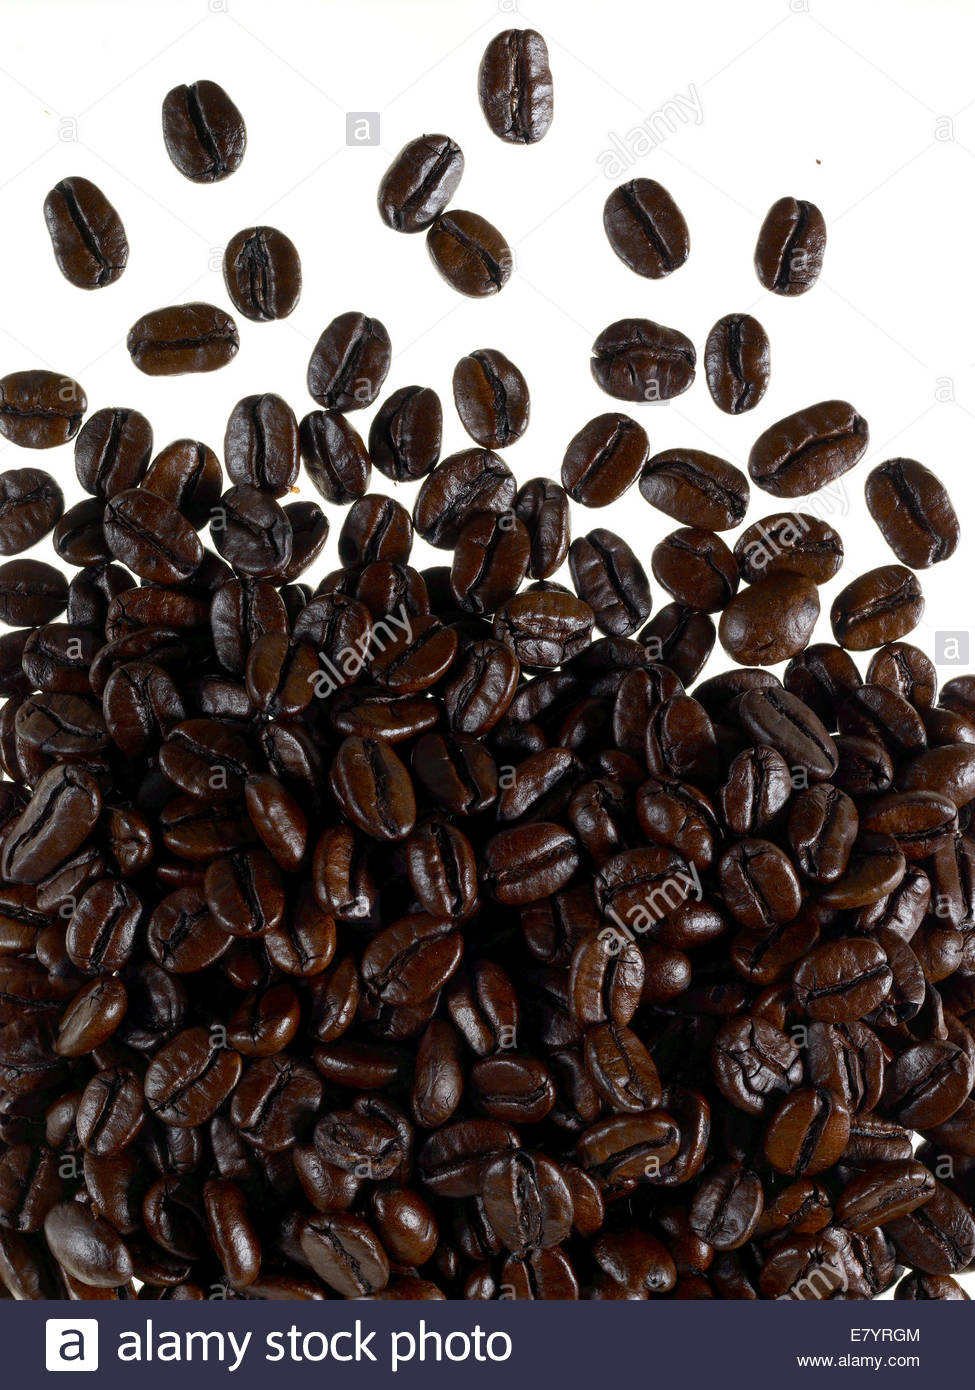 roasted coffee beans, - Stock Image